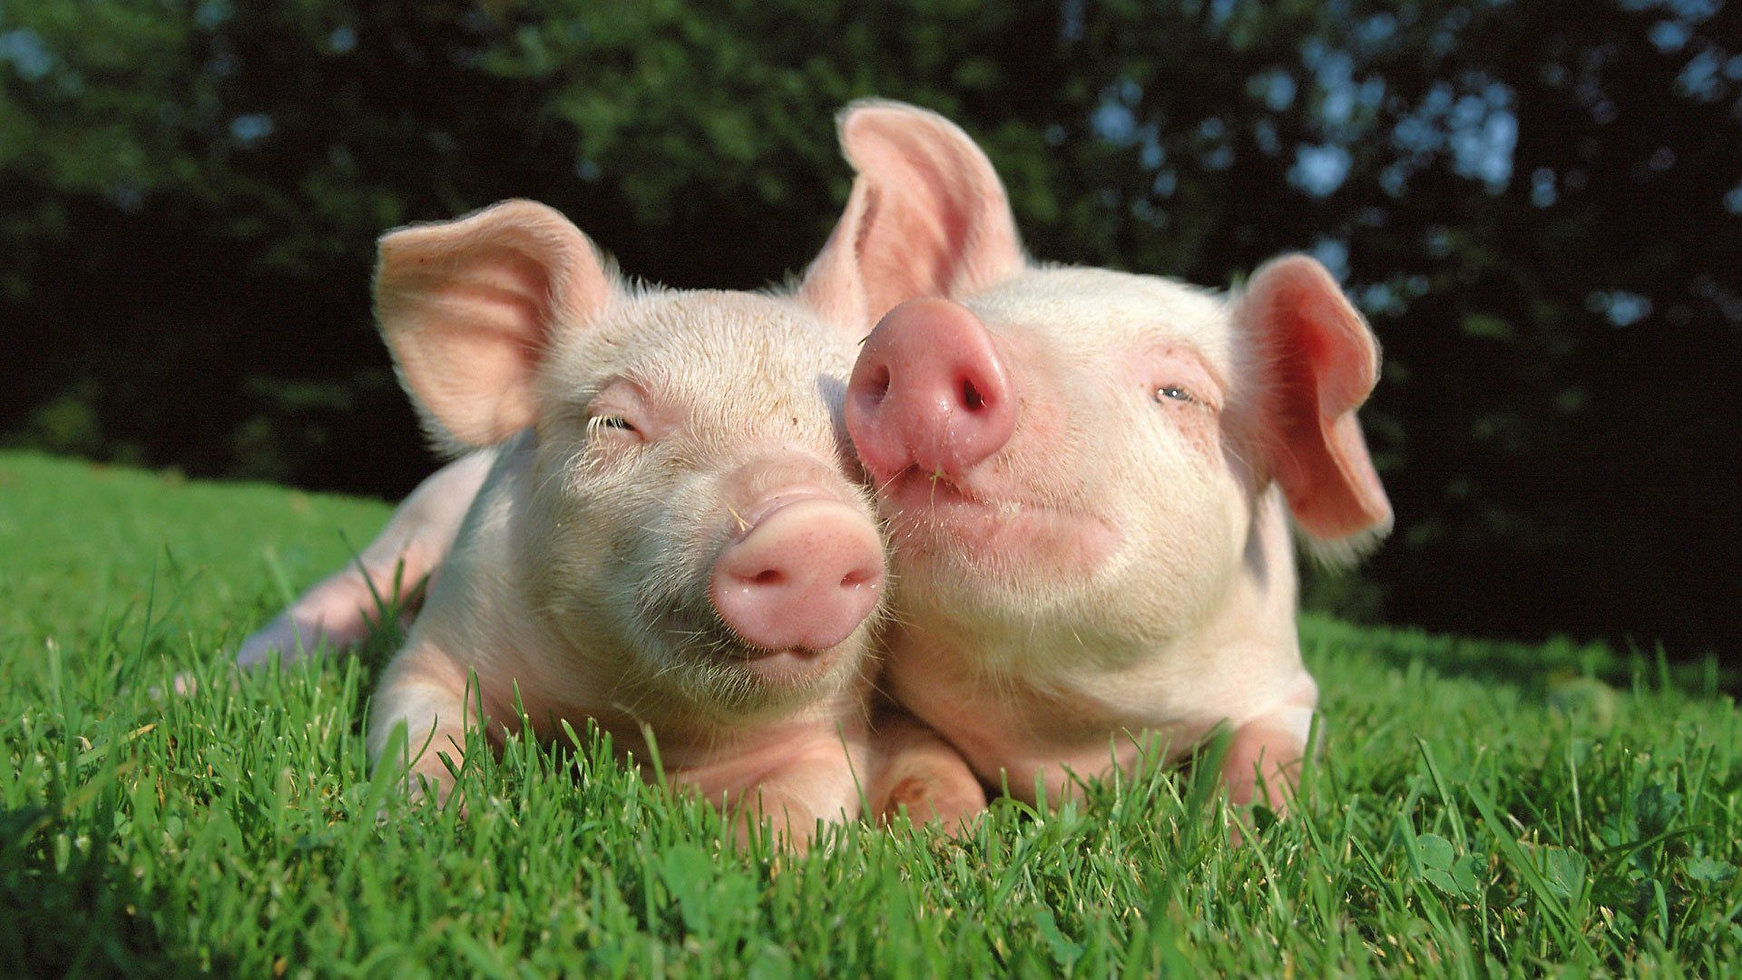 cute-pigs-pictures.jpg